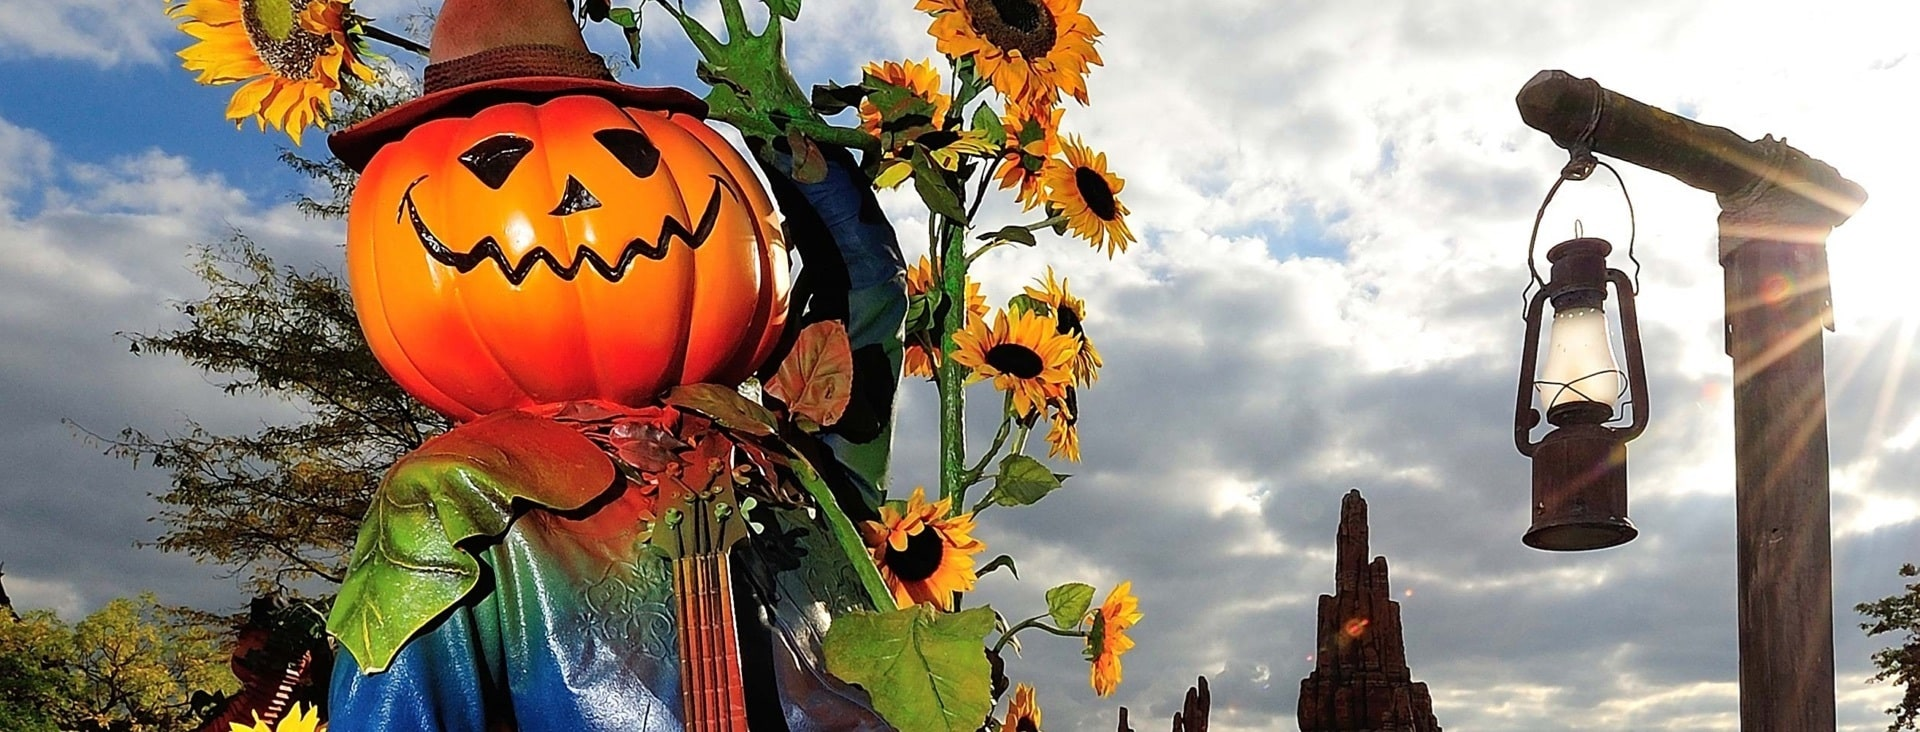 Halloween en Disneyland® Paris